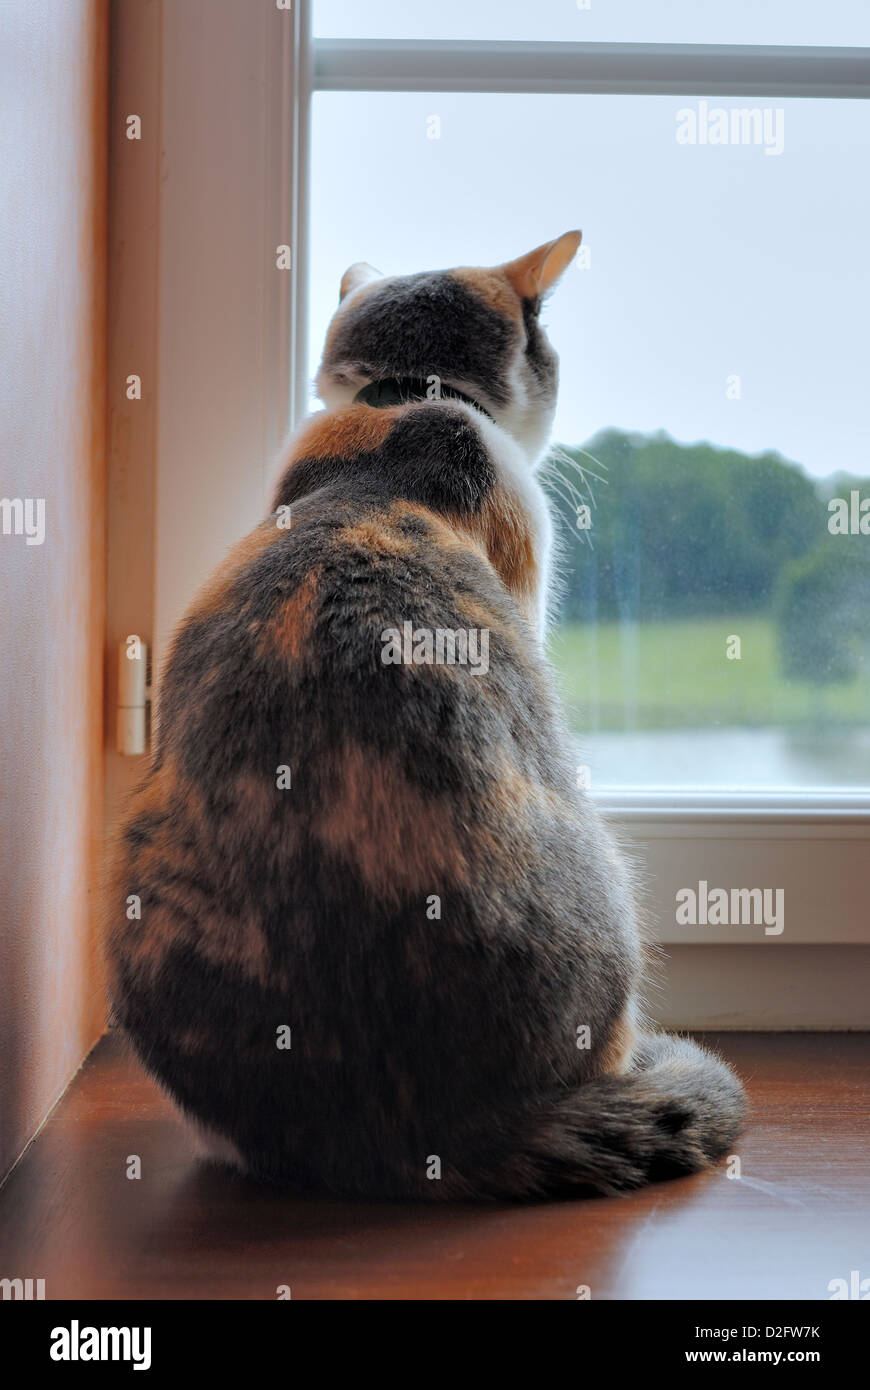 Cat looking out of a window - Stock Image